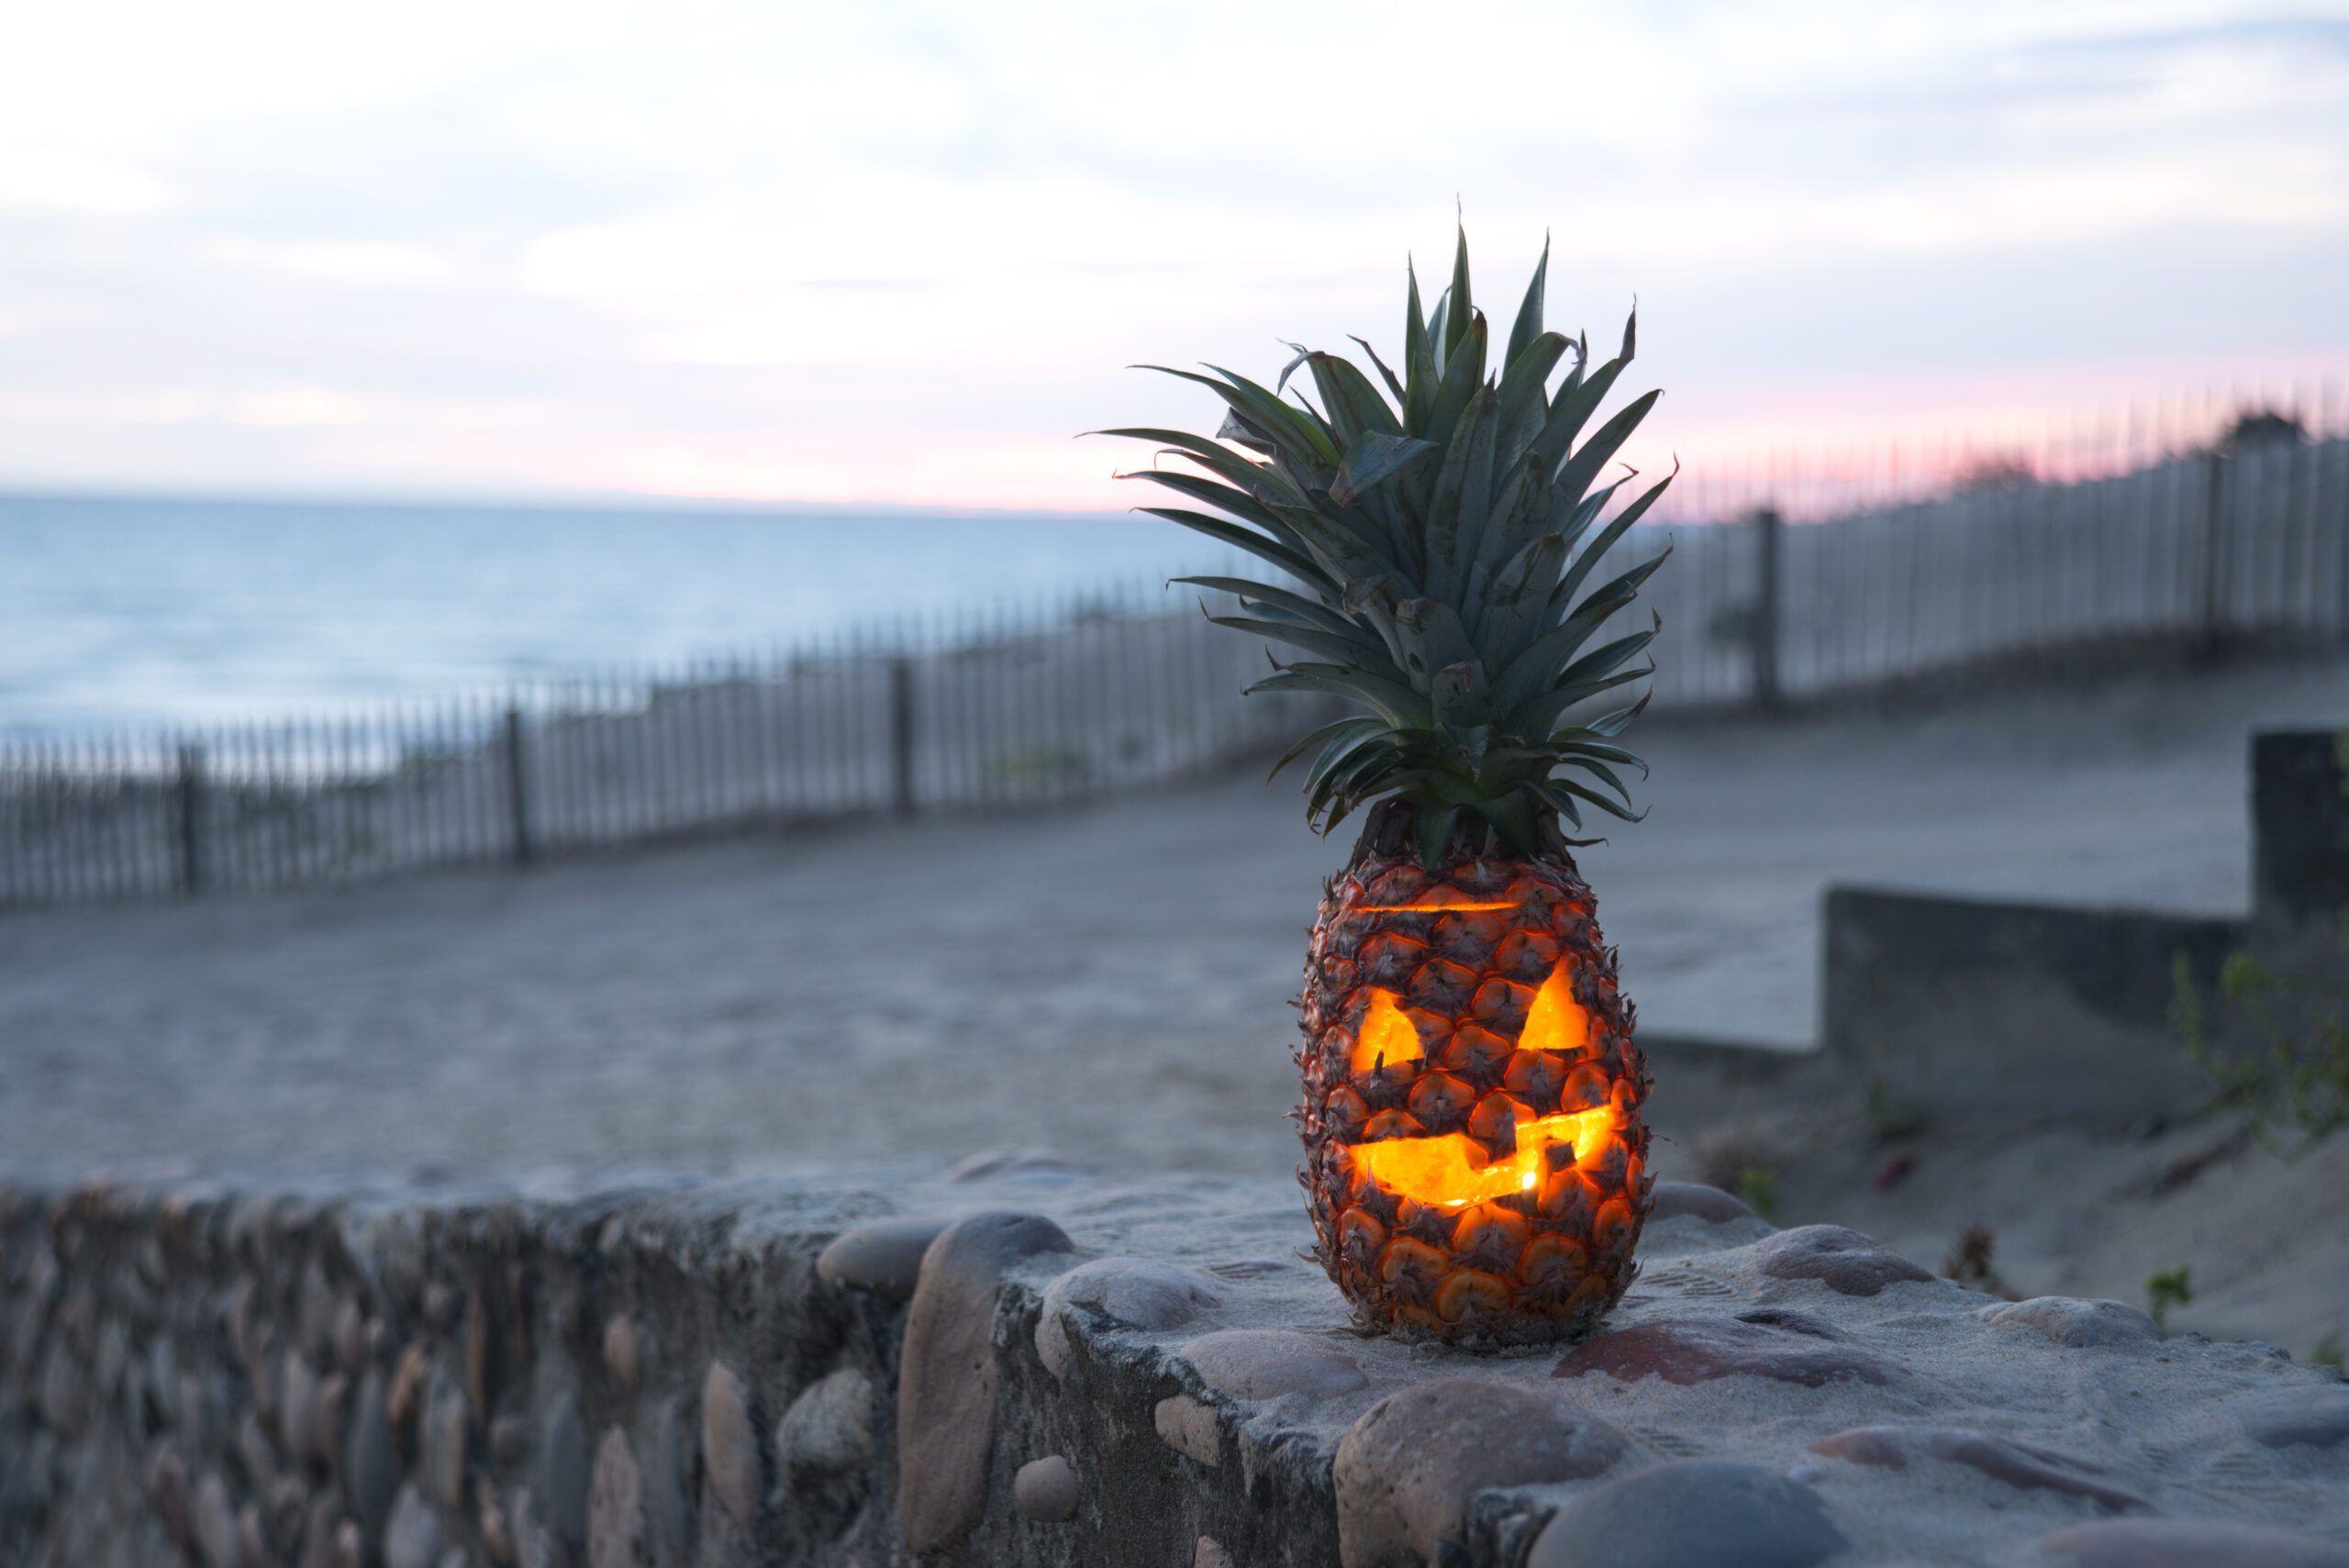 pineapple on beach turned into jackolantern